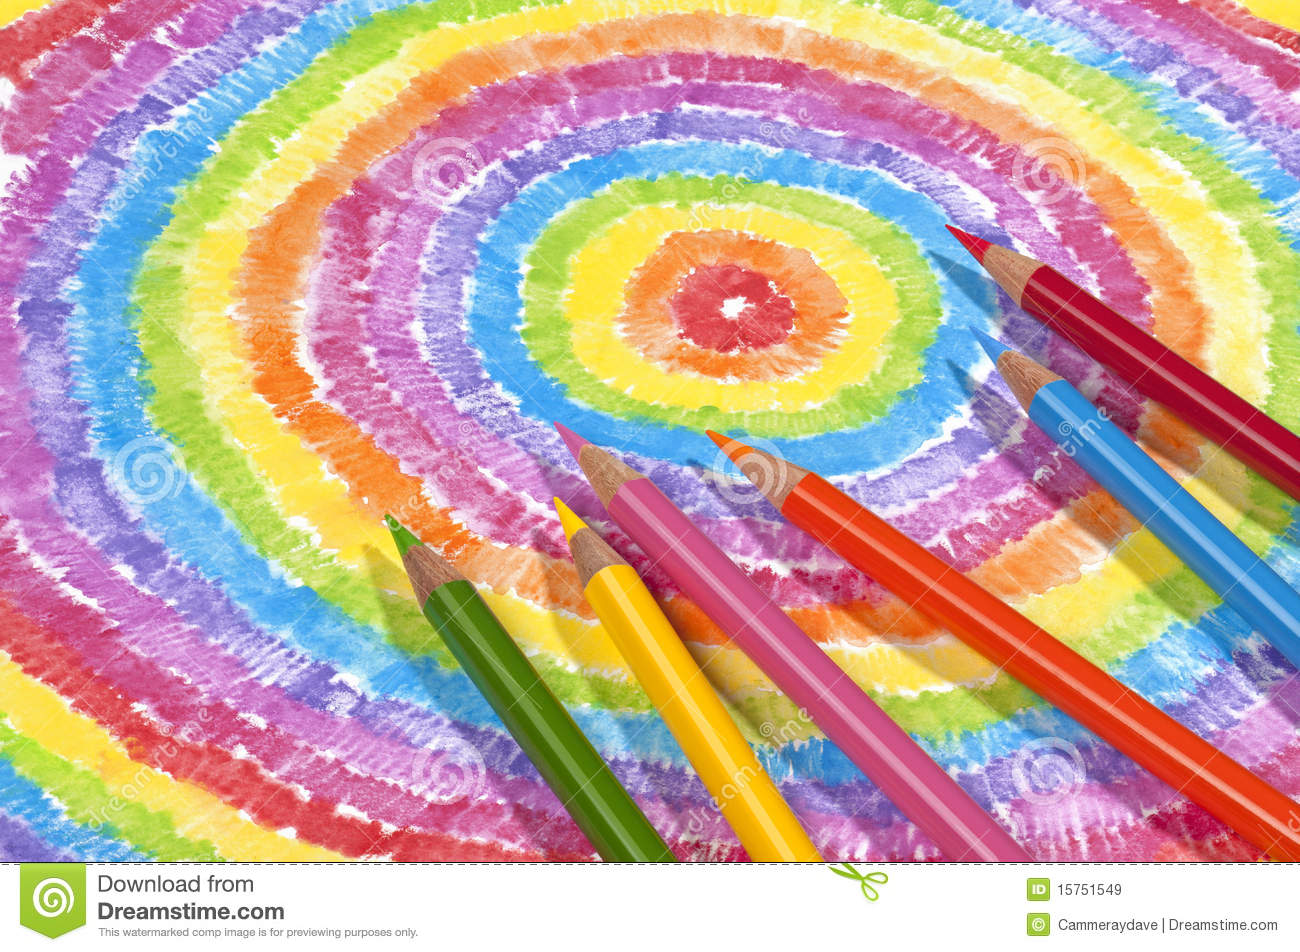 Color Drawing And Colored Pencils Stock Image - Image of colors ...